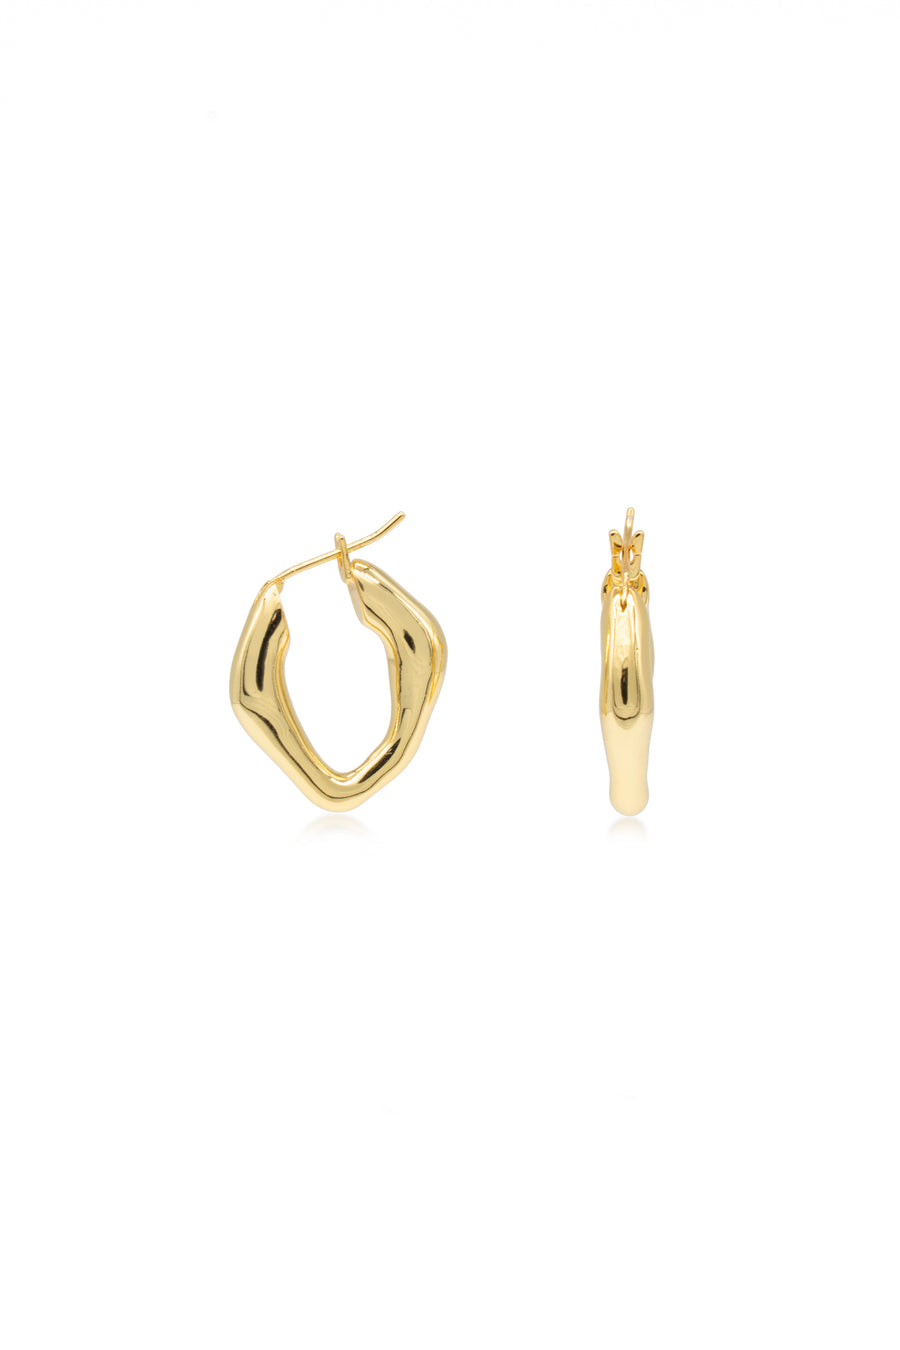 BACK IN STOCK! LIV Earrings